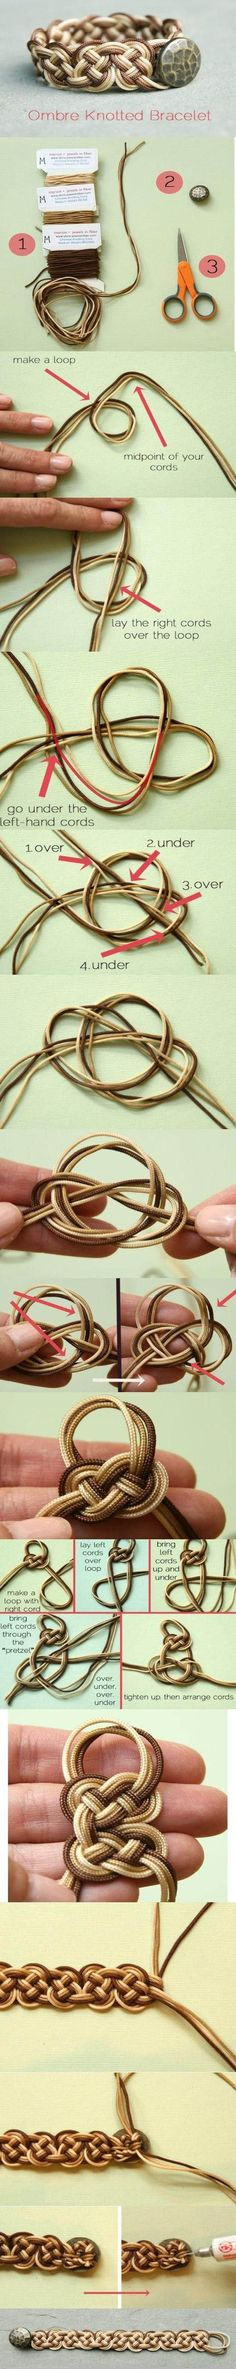 Diy Hemp Rope Bracelet, Supplies can be found at  http://www.danscraftsandthings.com